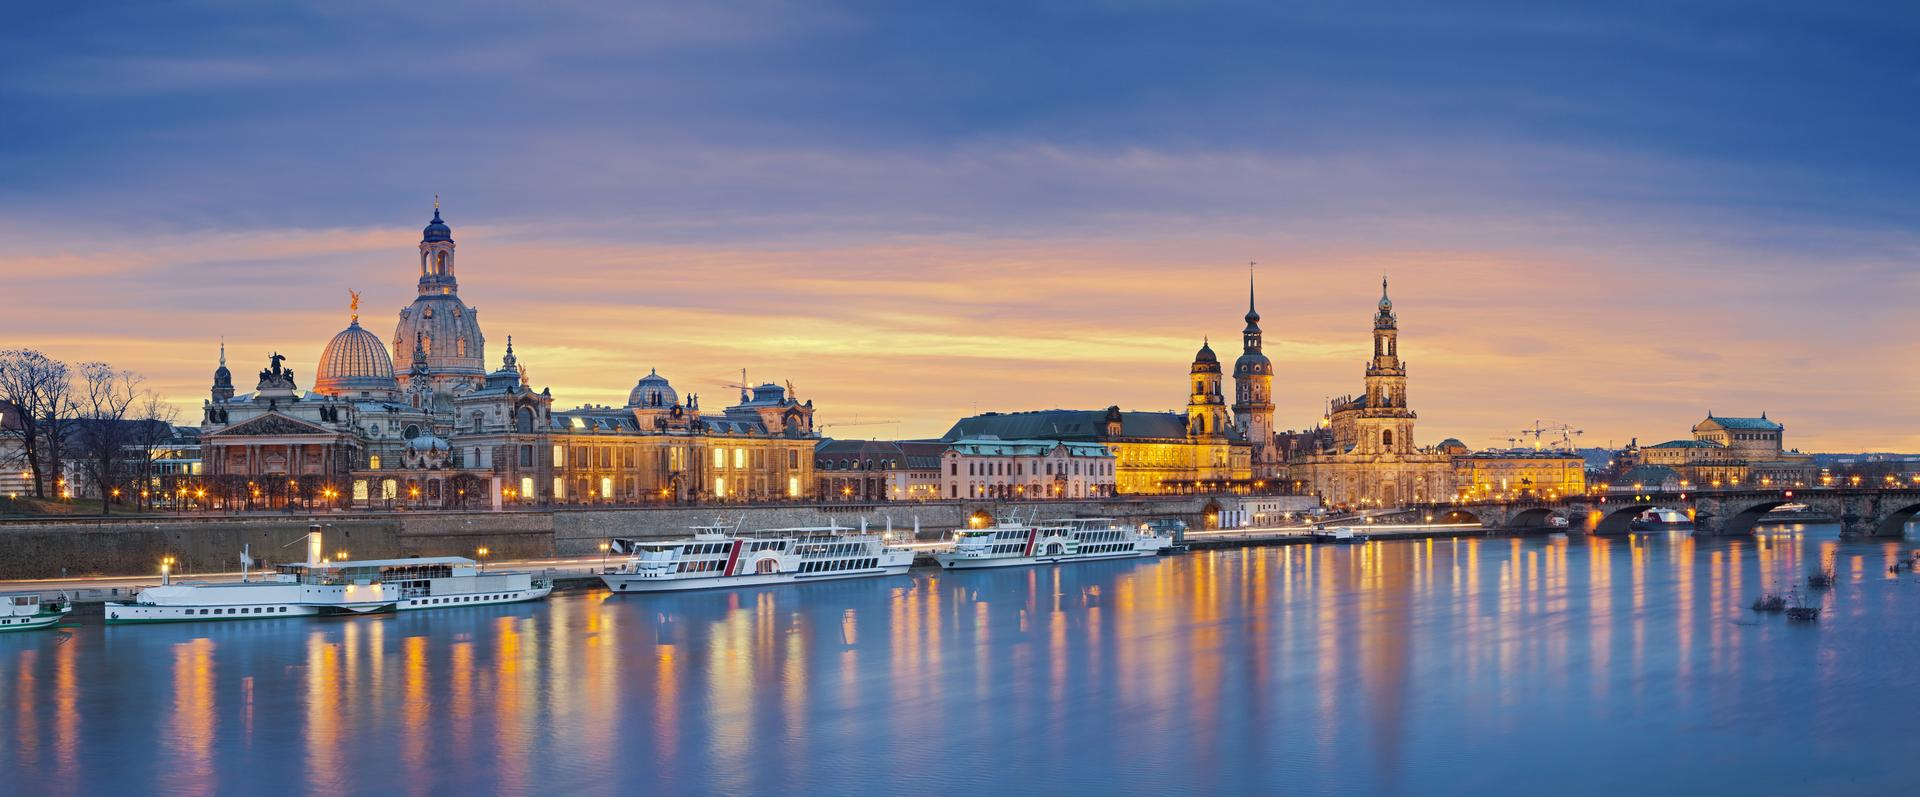 Dresden iStock 56399220 LARGE